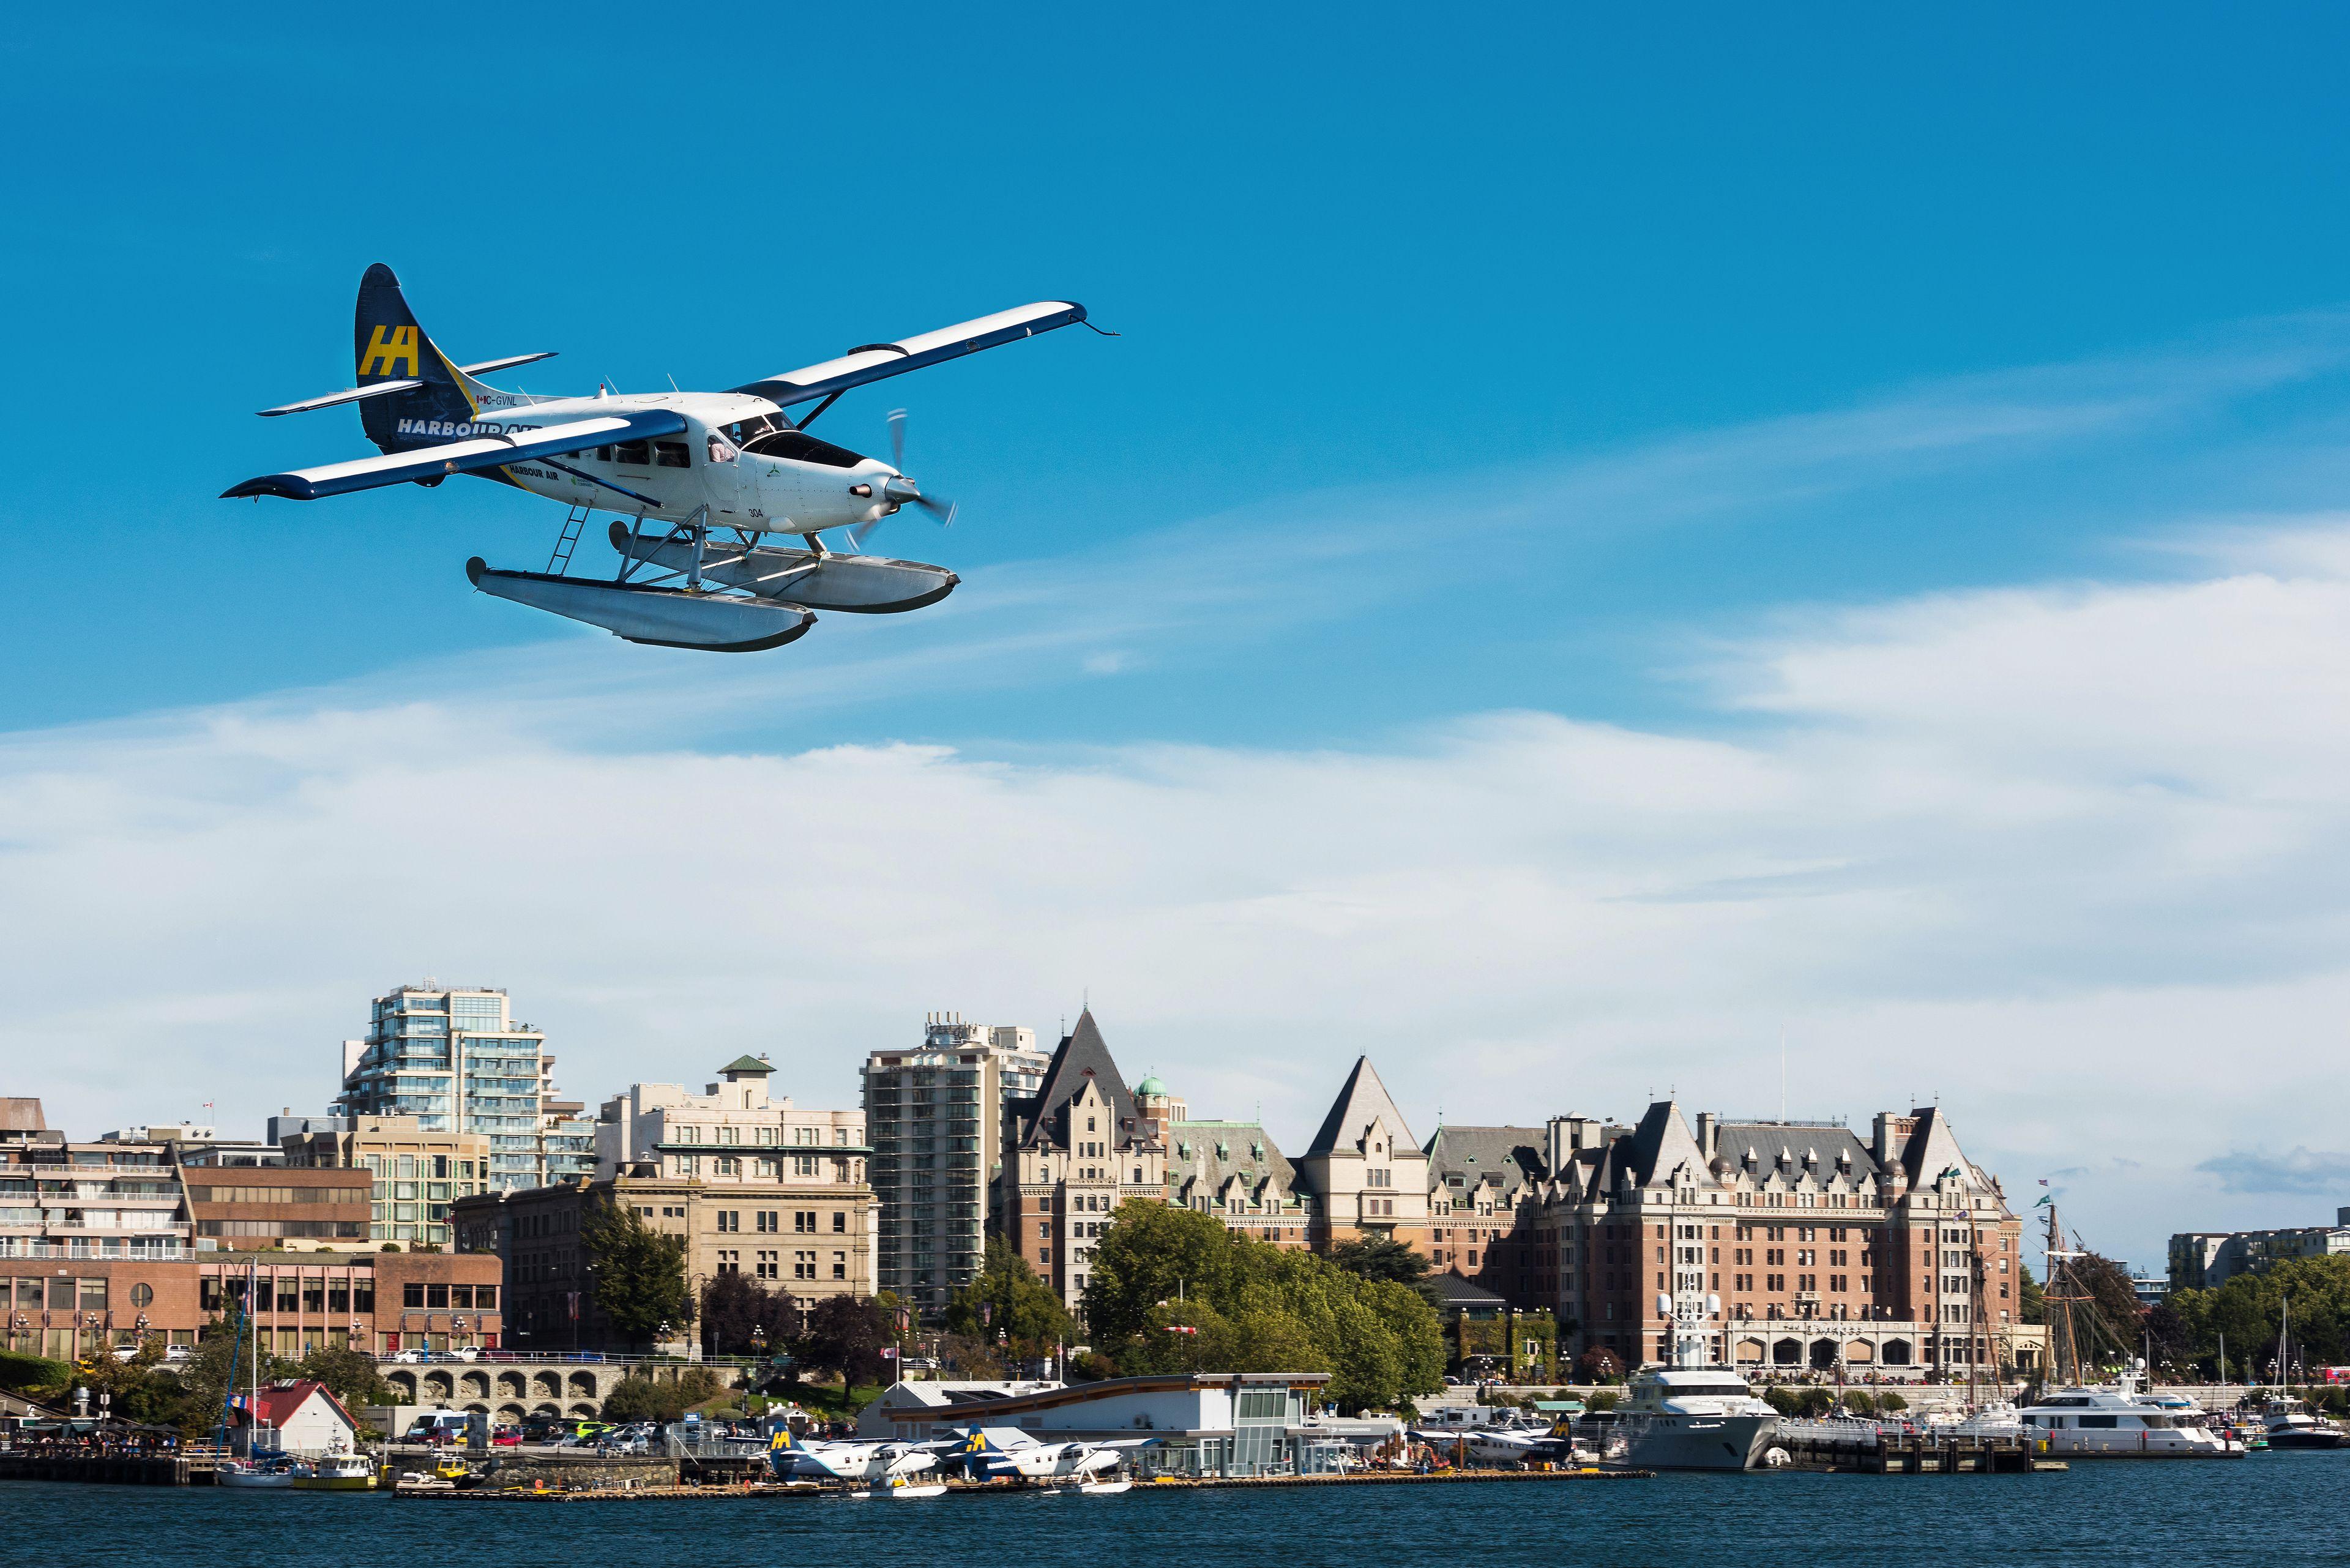 Expedia_Victoria Inner Harbour Approach_10247x576.jpg